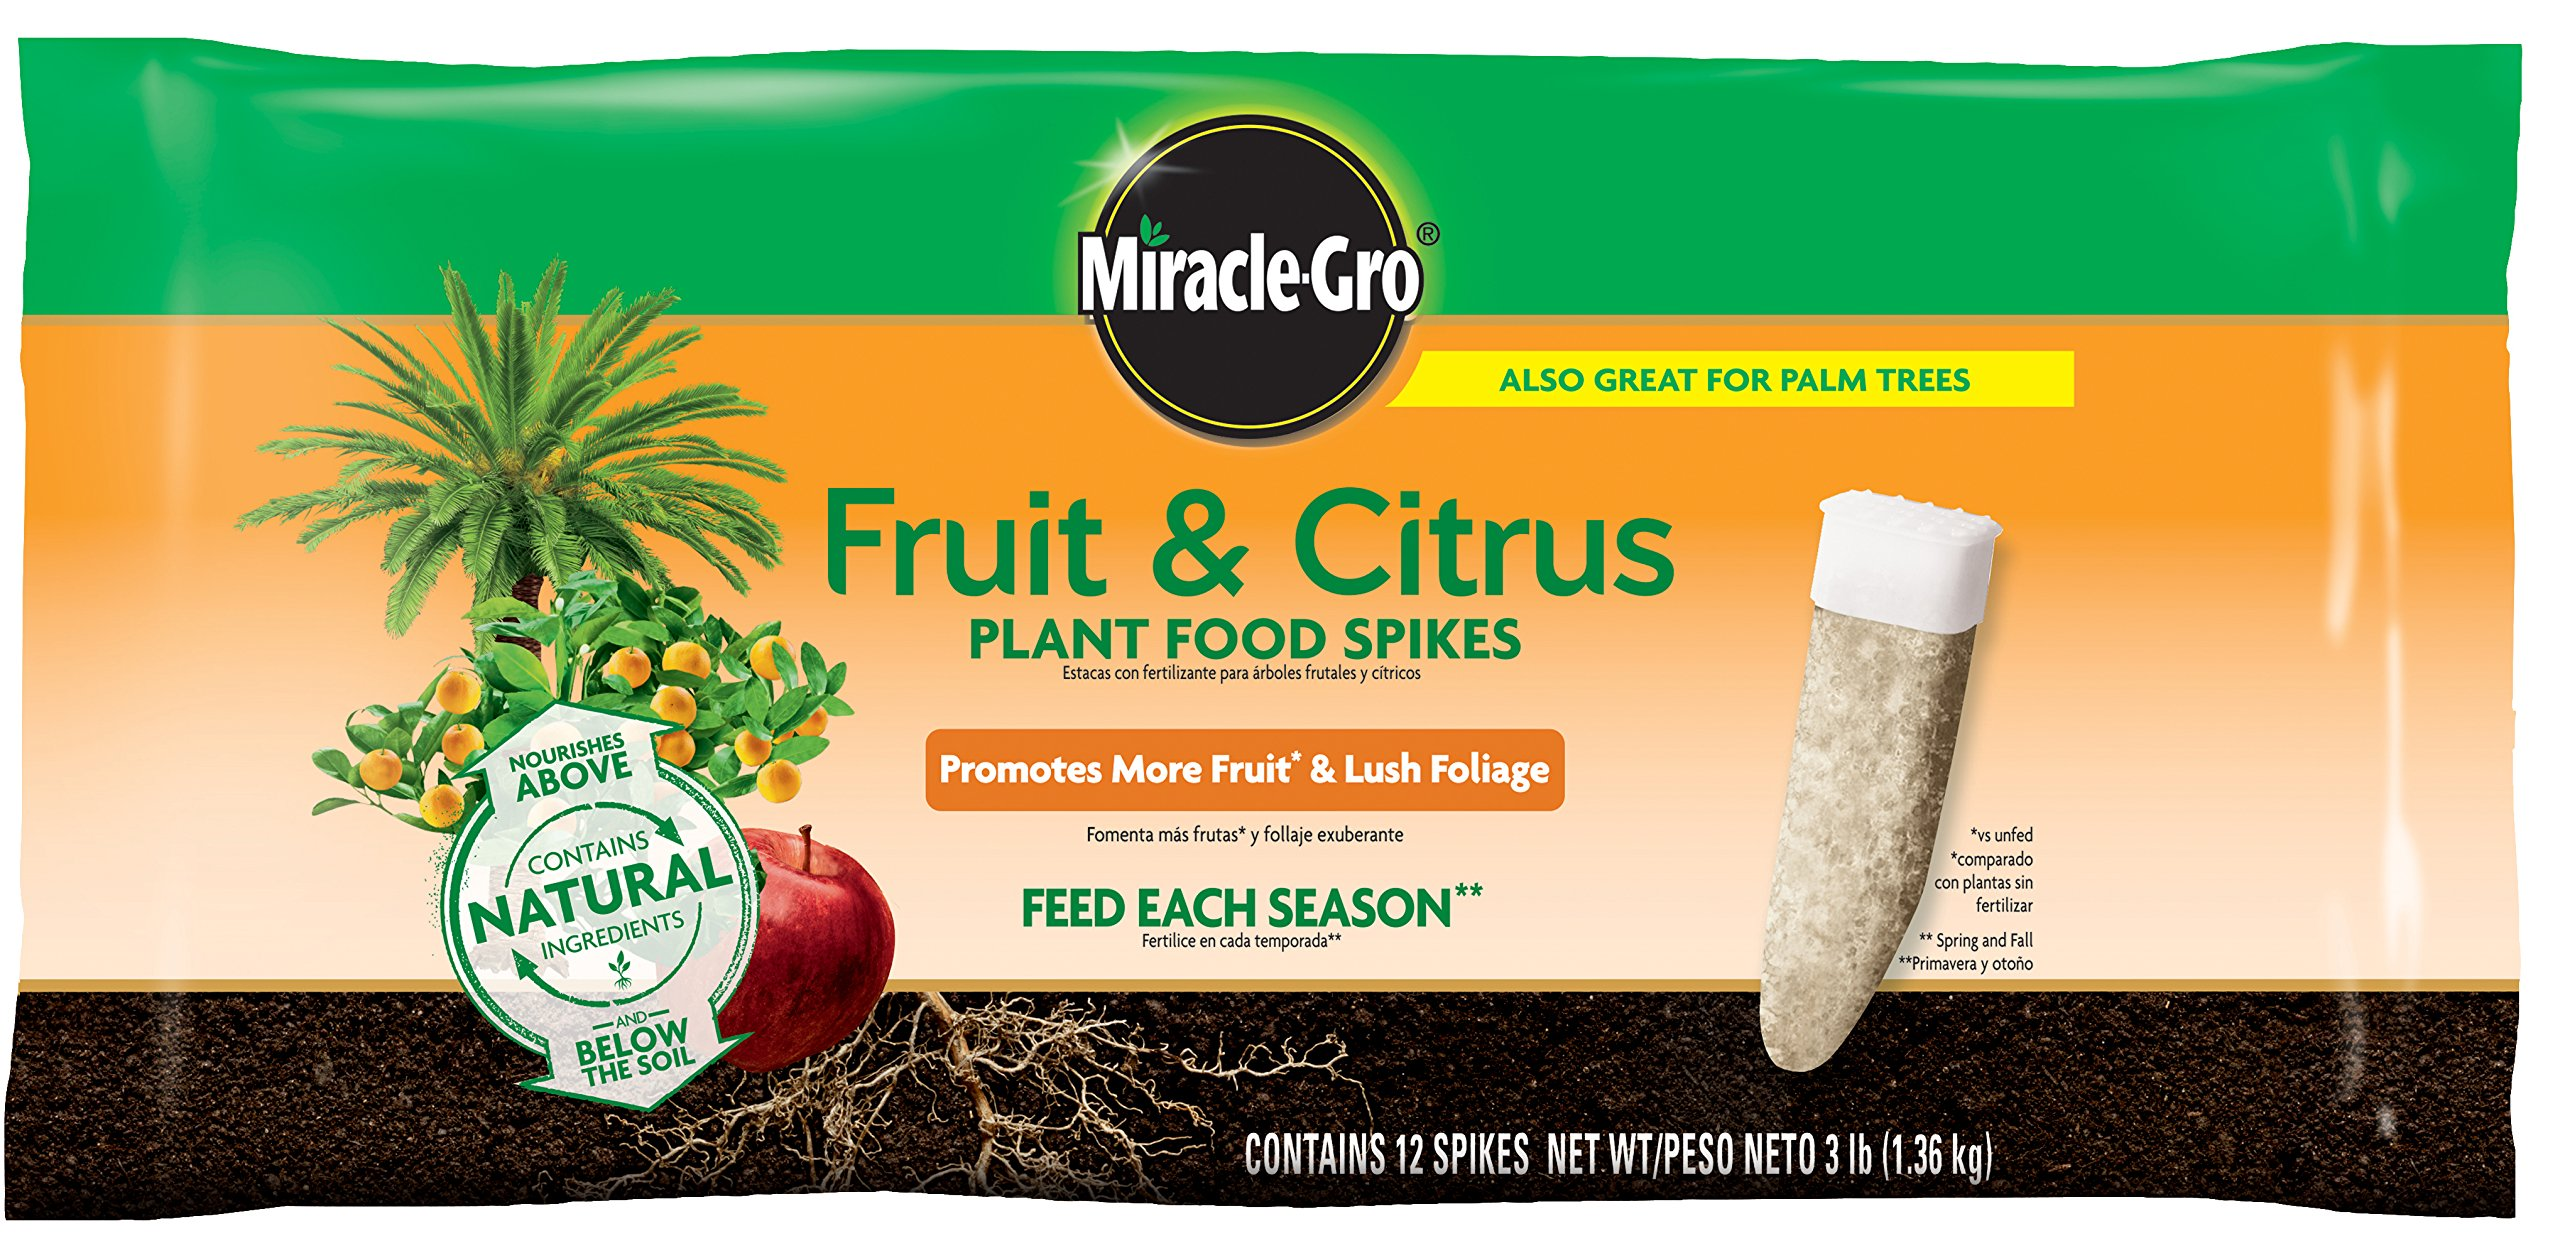 Miracle-Gro Fruit & Citrus Fertilizer Spikes - 12 PK by Miracle-Gro